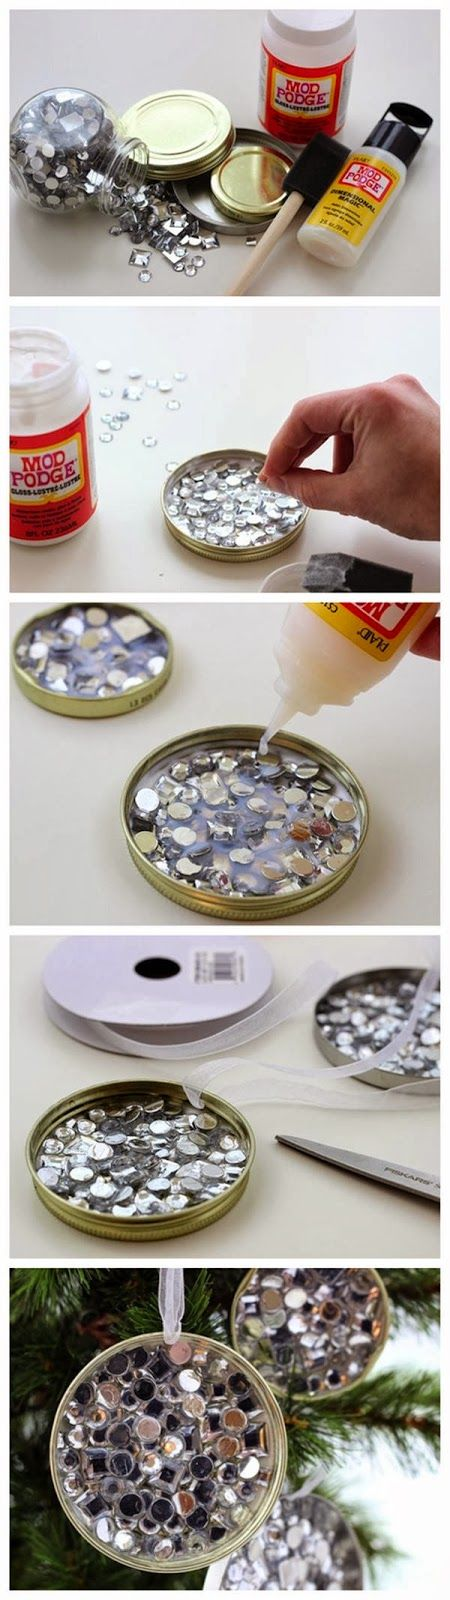 Easy and budget friendly DIY Christmas Ornament- simple rhinestone recycled ornament craft tutorial. This one might be fun to do with the gi...